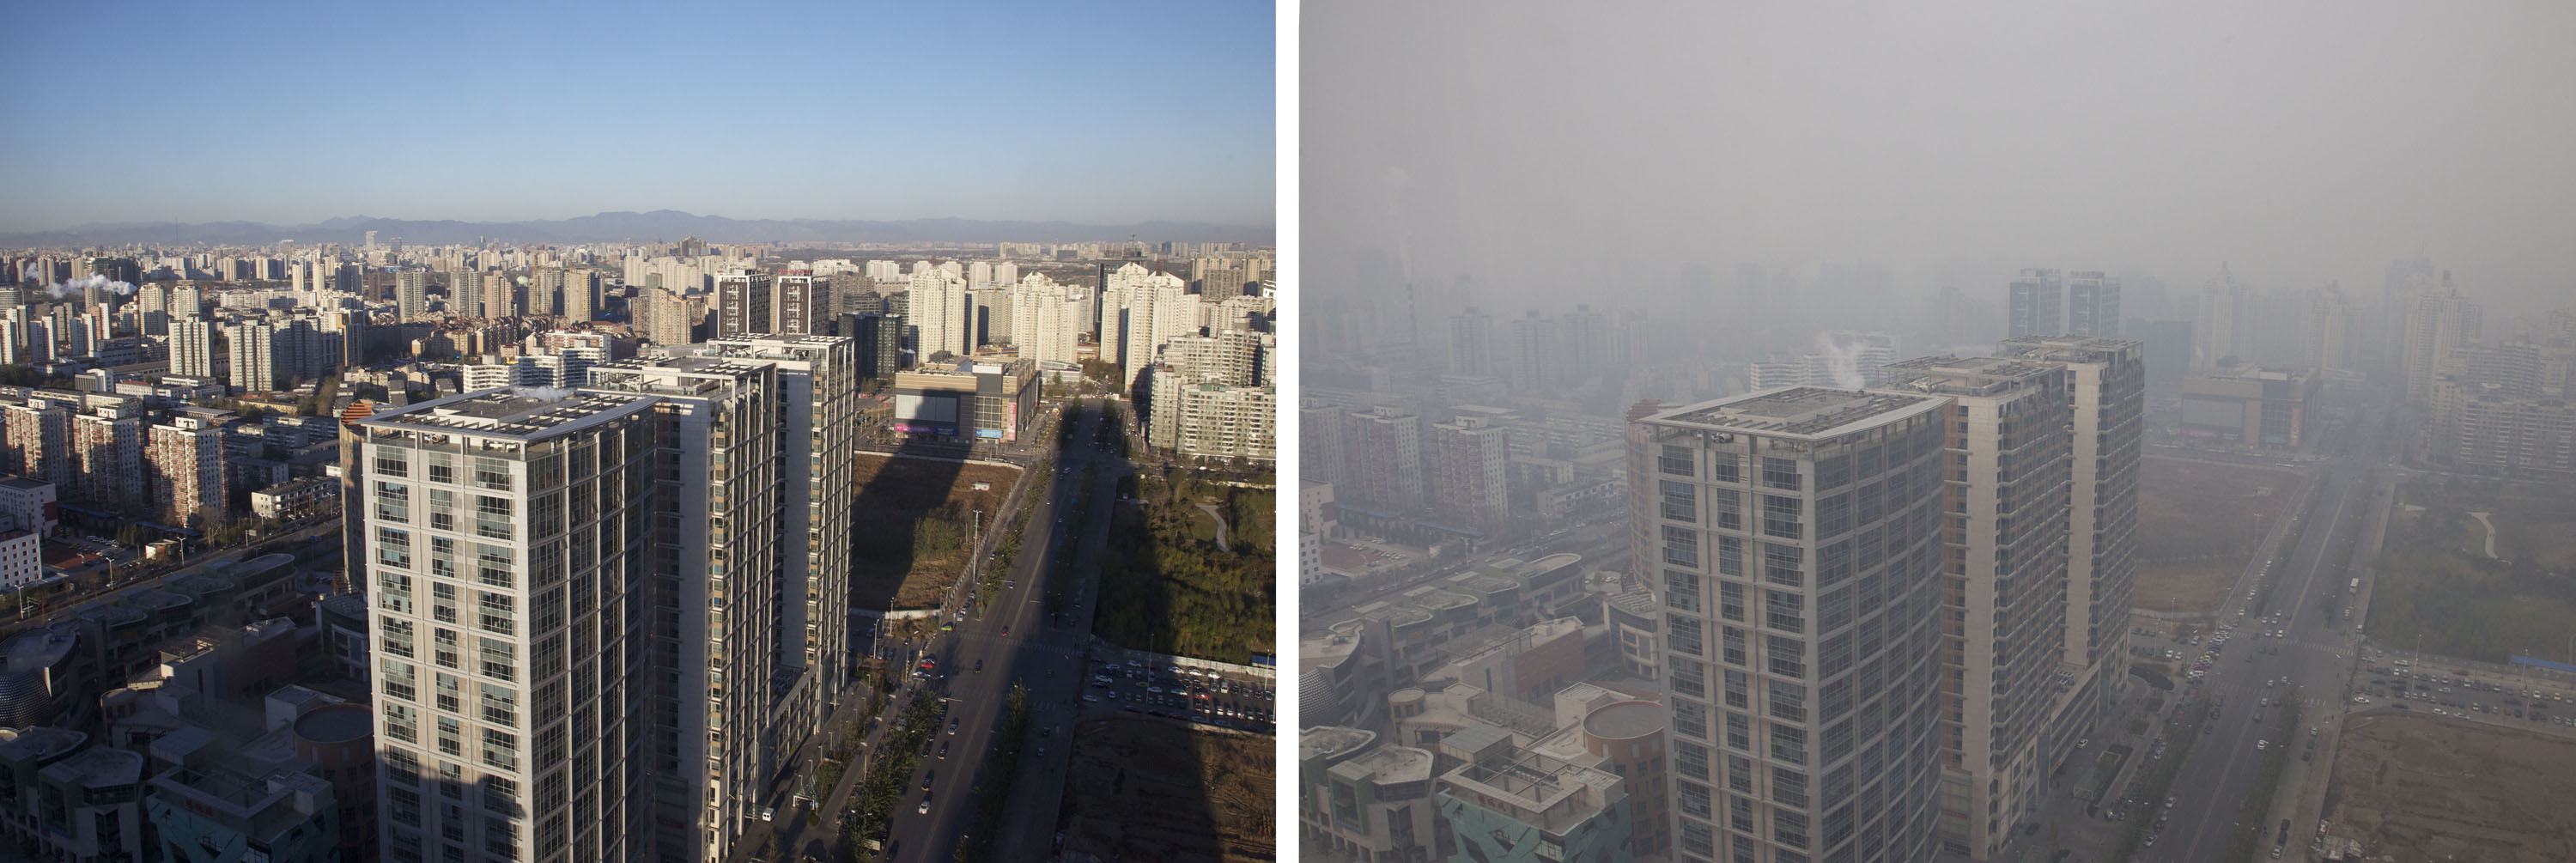 Clear day versus smog day in Beijing. Switching to electric would cut air pollution in the capital.